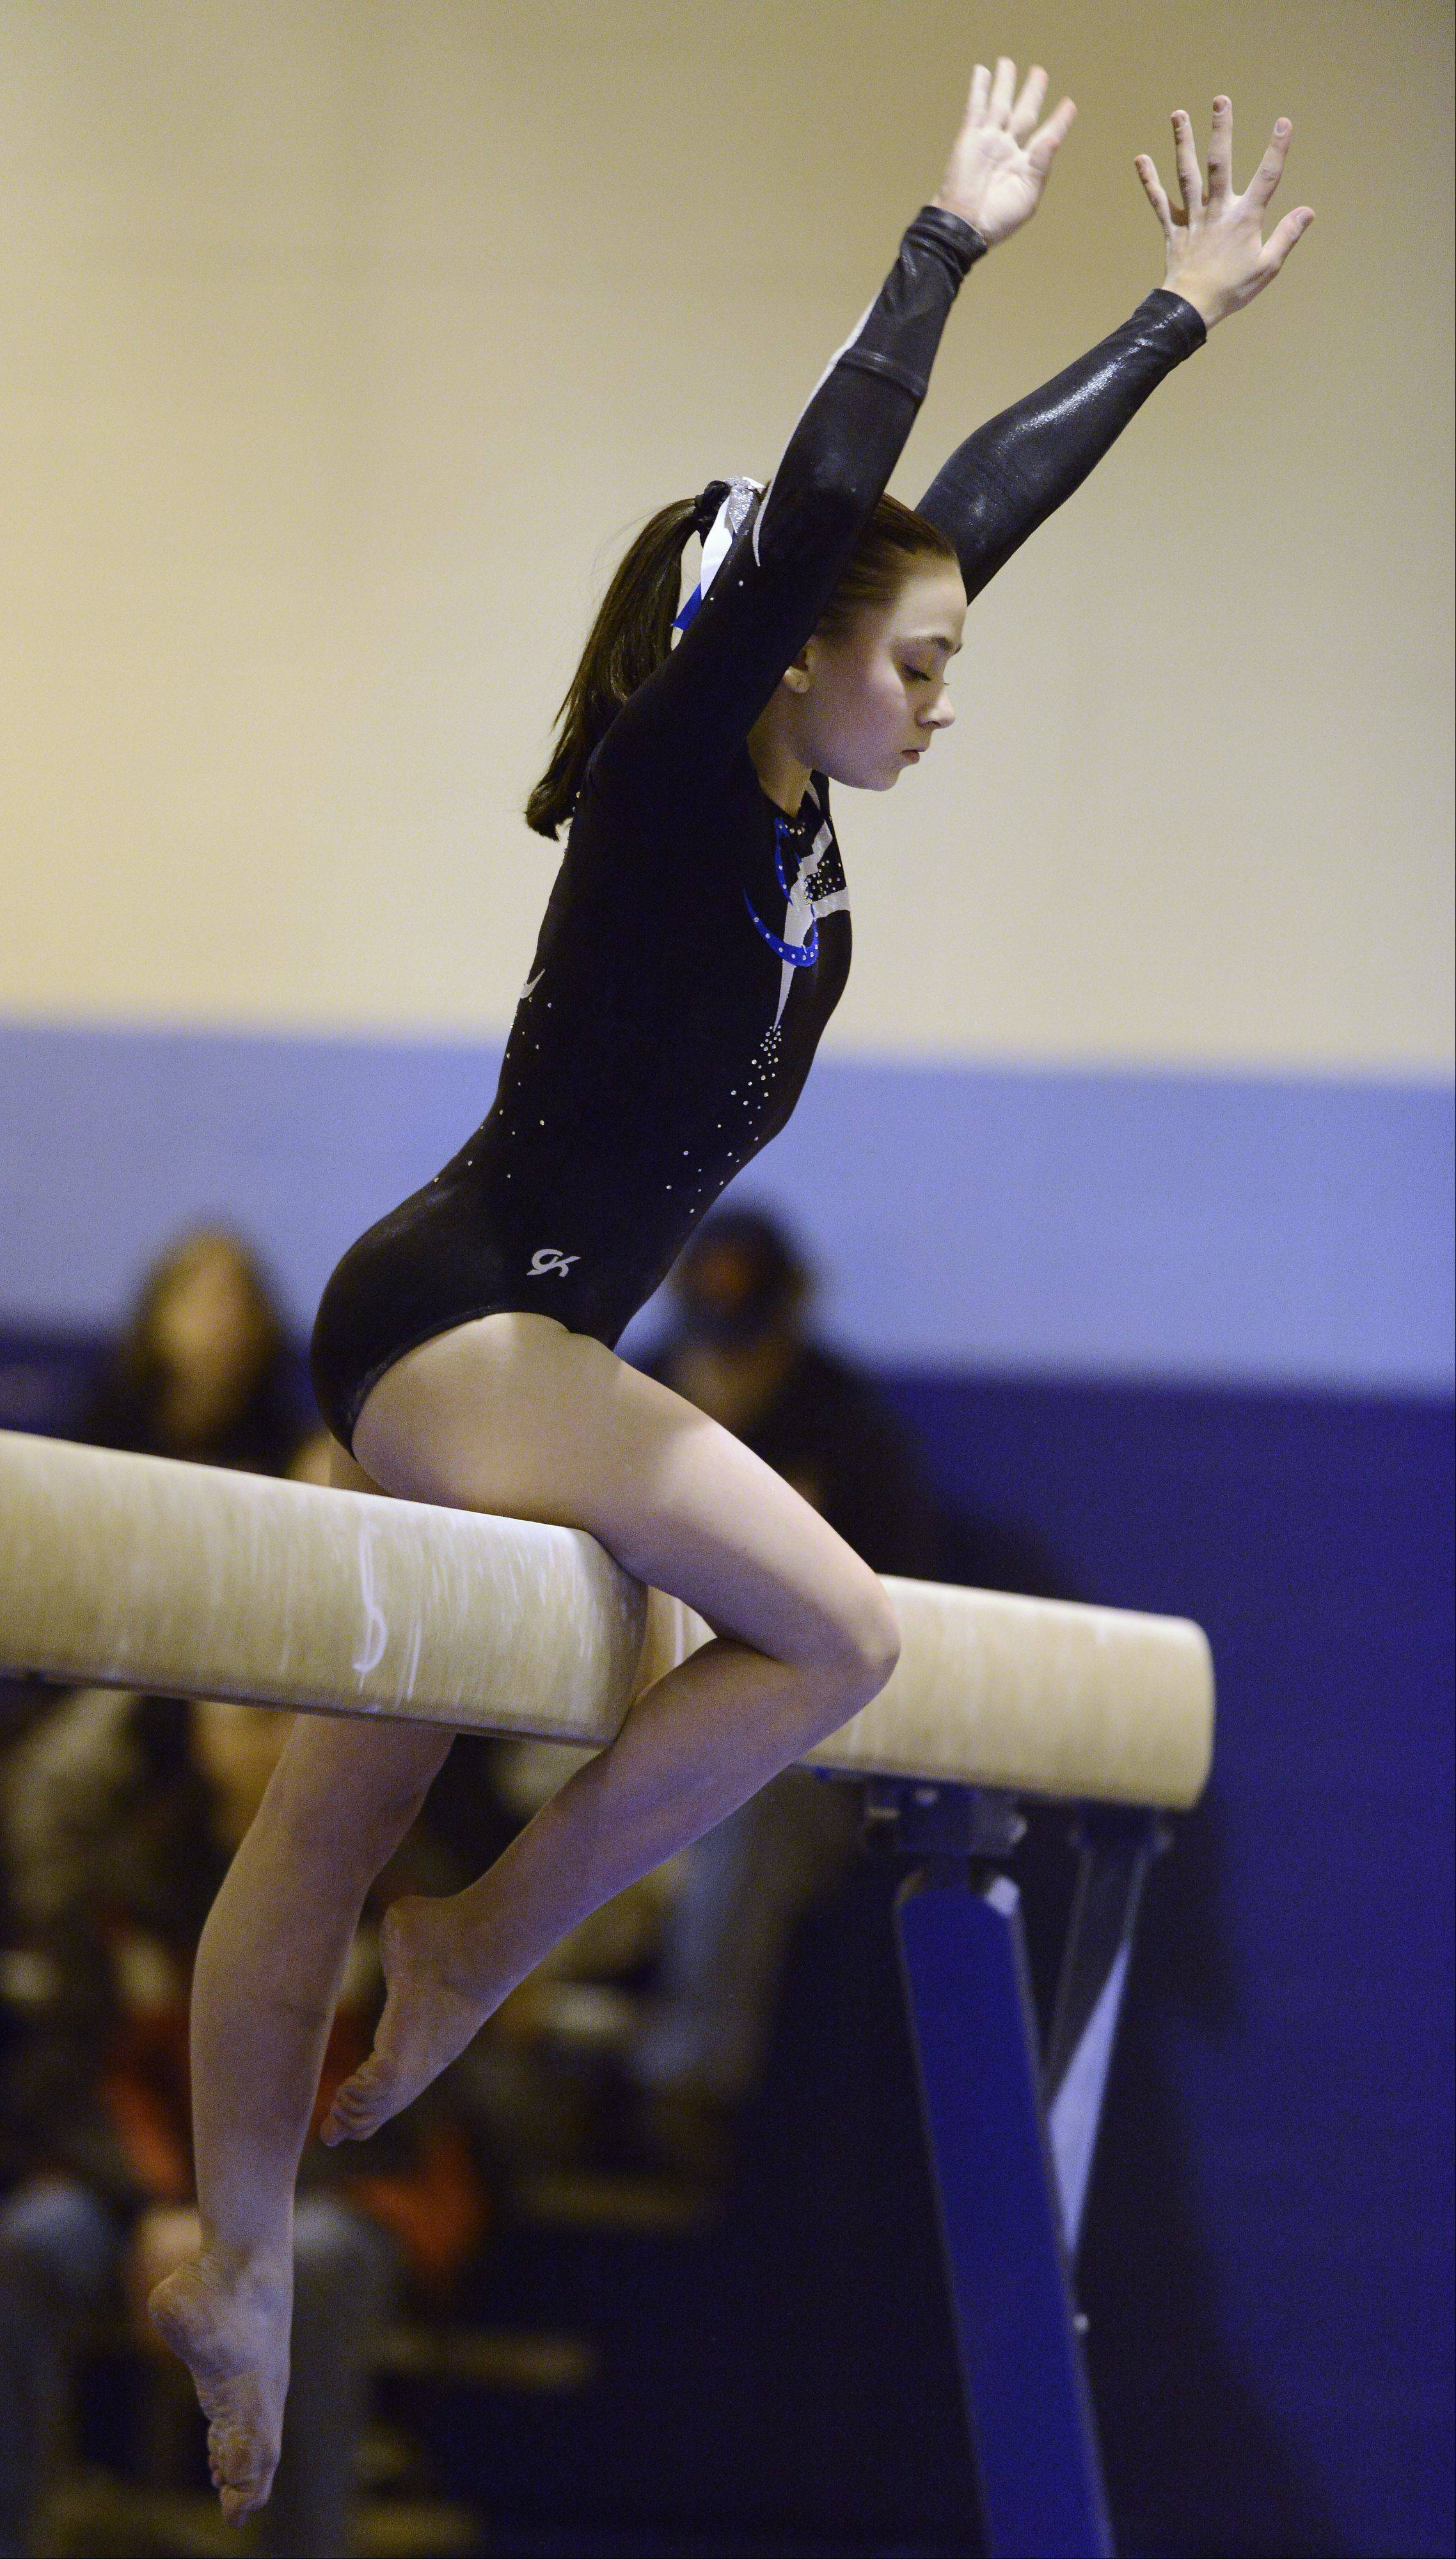 Prospect's Megan Donner competes on the balance beam during Tuesday's Regional Gymnastics meet in Mount Prospect.